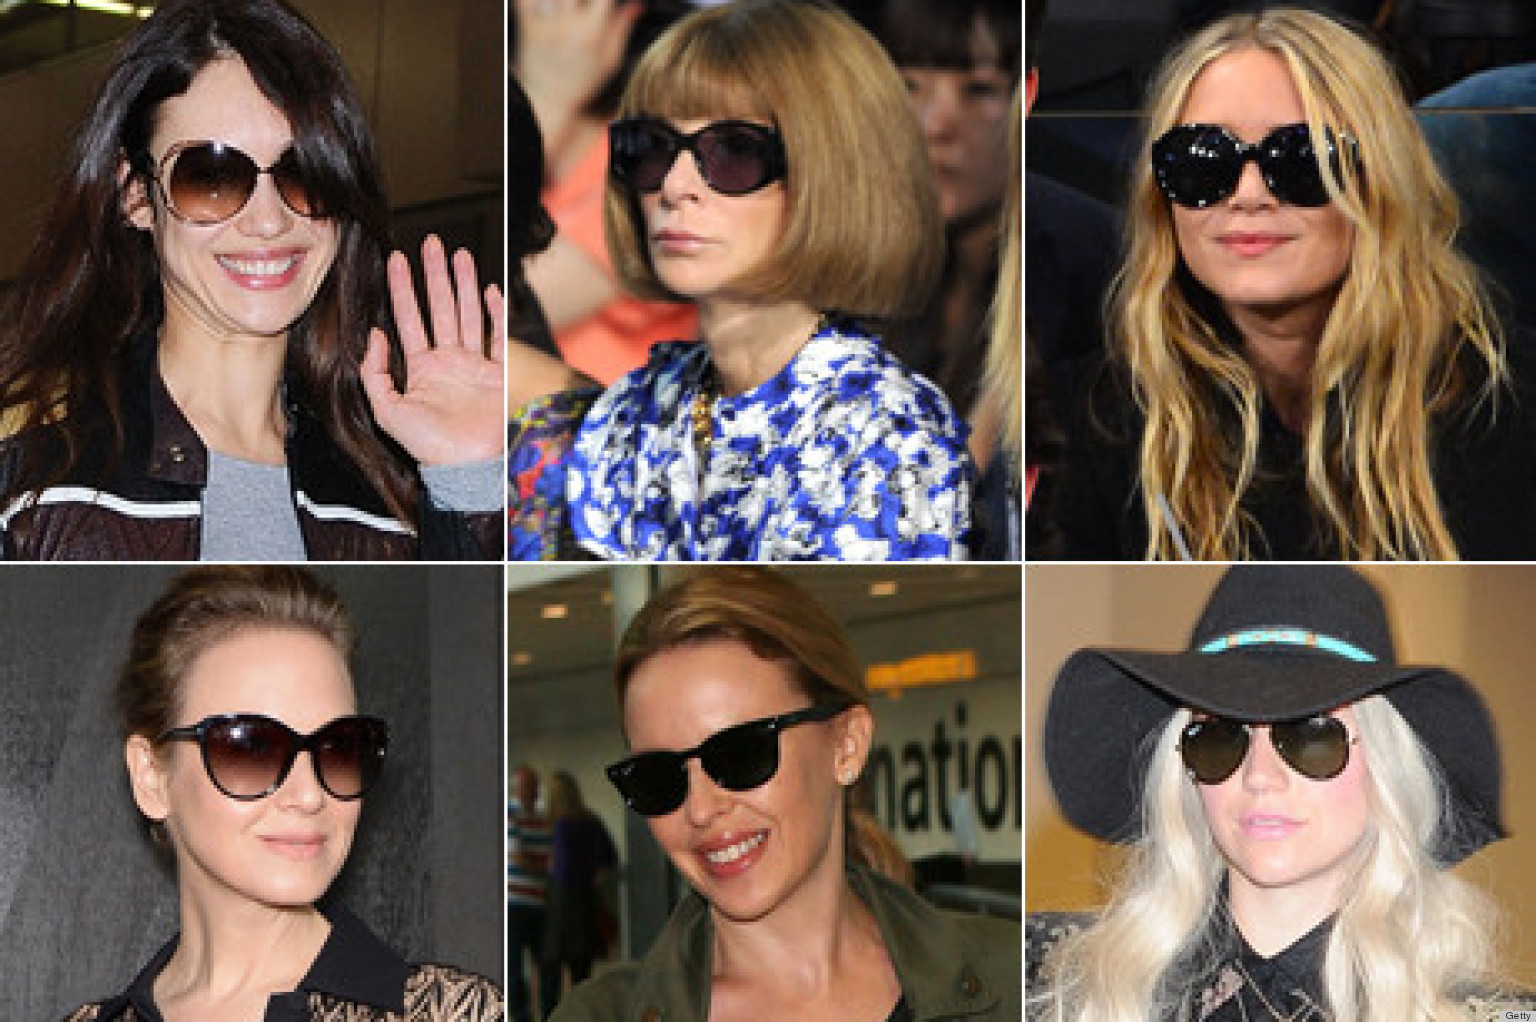 Why Do Celebrities Wear Sunglasses Indoors?